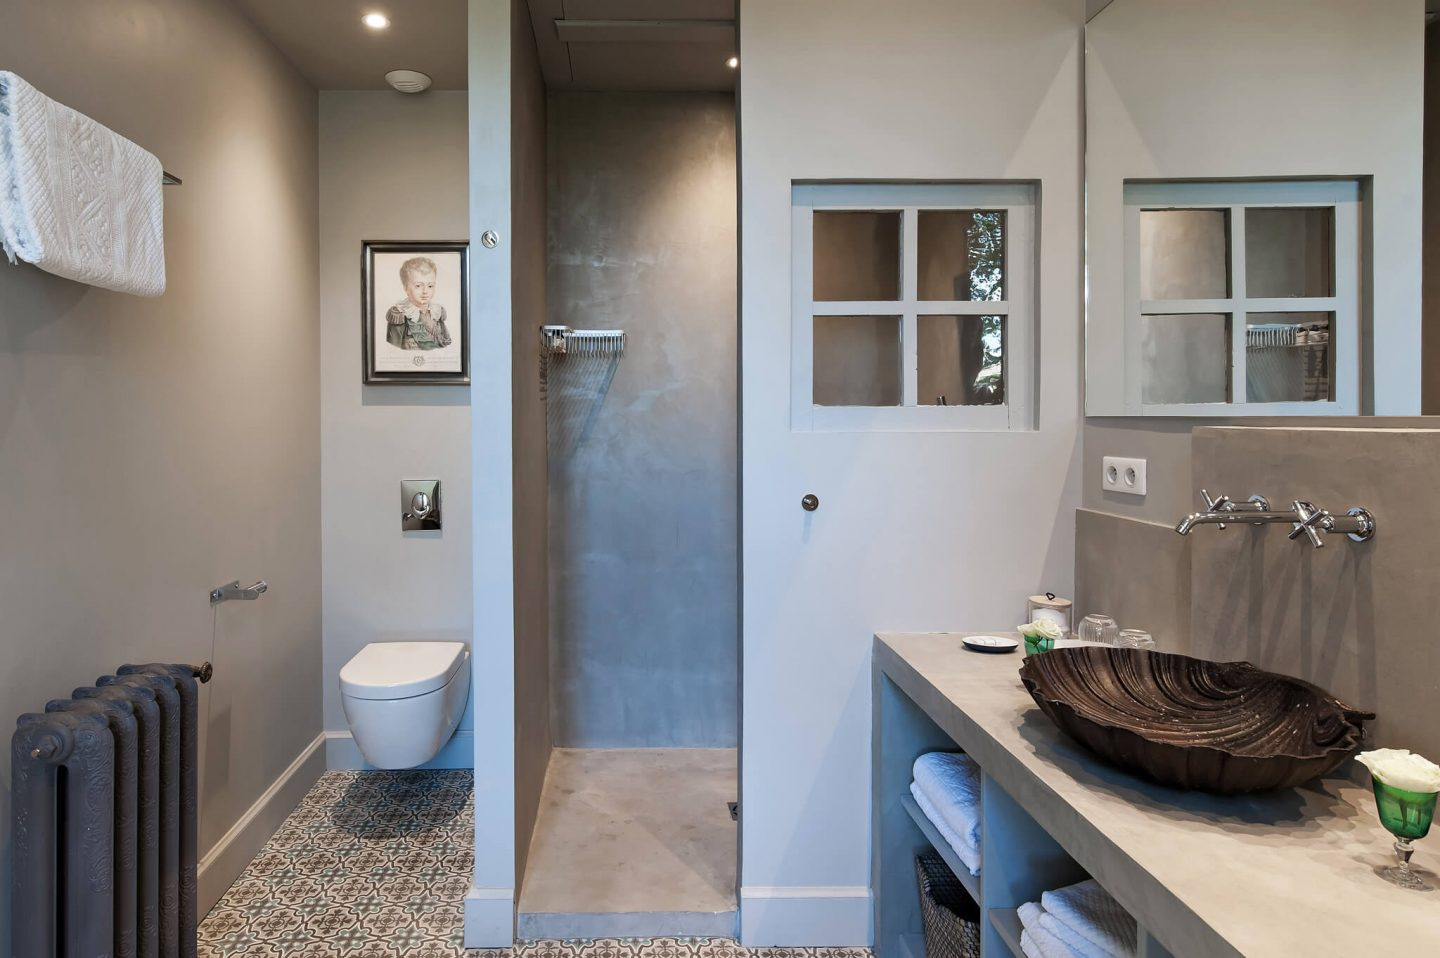 Interior window in a walk-in shower to maximize natural light in a serene, modern, spare bathroom. Serene French Country Style interior design inspiration. The Serenity Suite at Avignon Hôtel Particulier. Luxurious and timeless restored 19th century French chateau in the South of France. Provencal romance, traditional architecture, modern French design, unique art, and European antiques. Photo: Haven In.